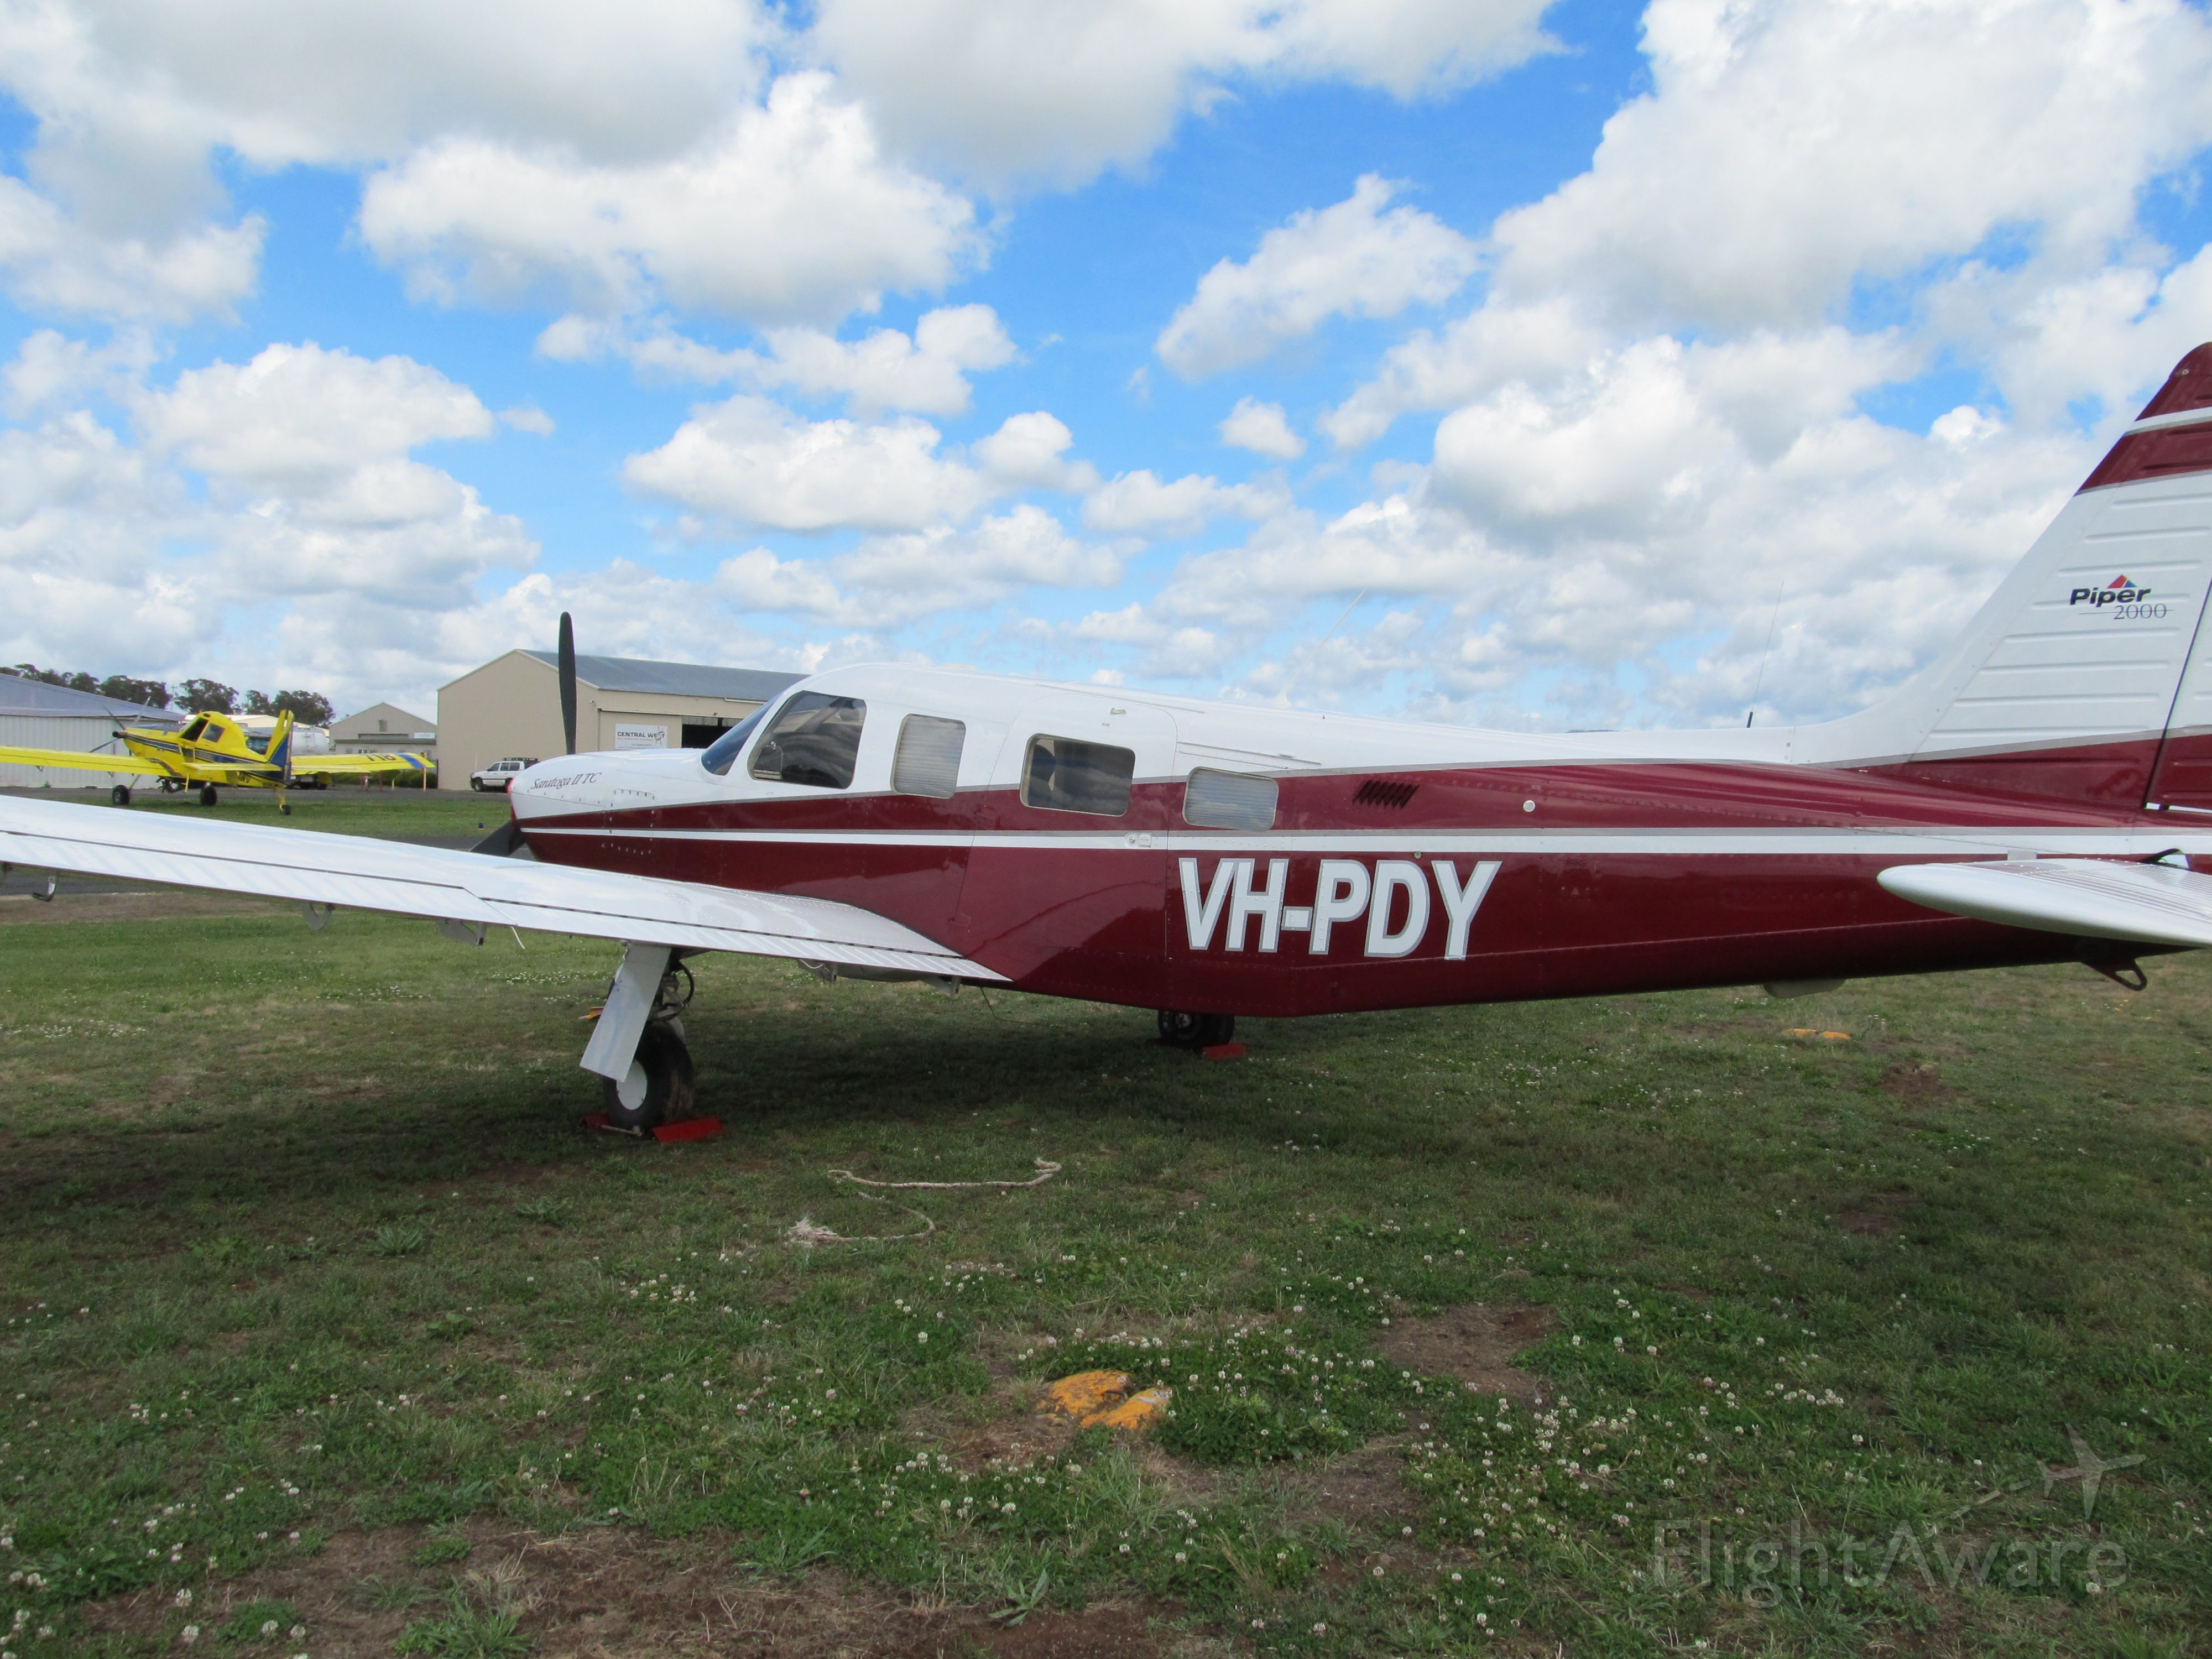 Piper Saratoga (VH-PDY) - Parked at Orange.